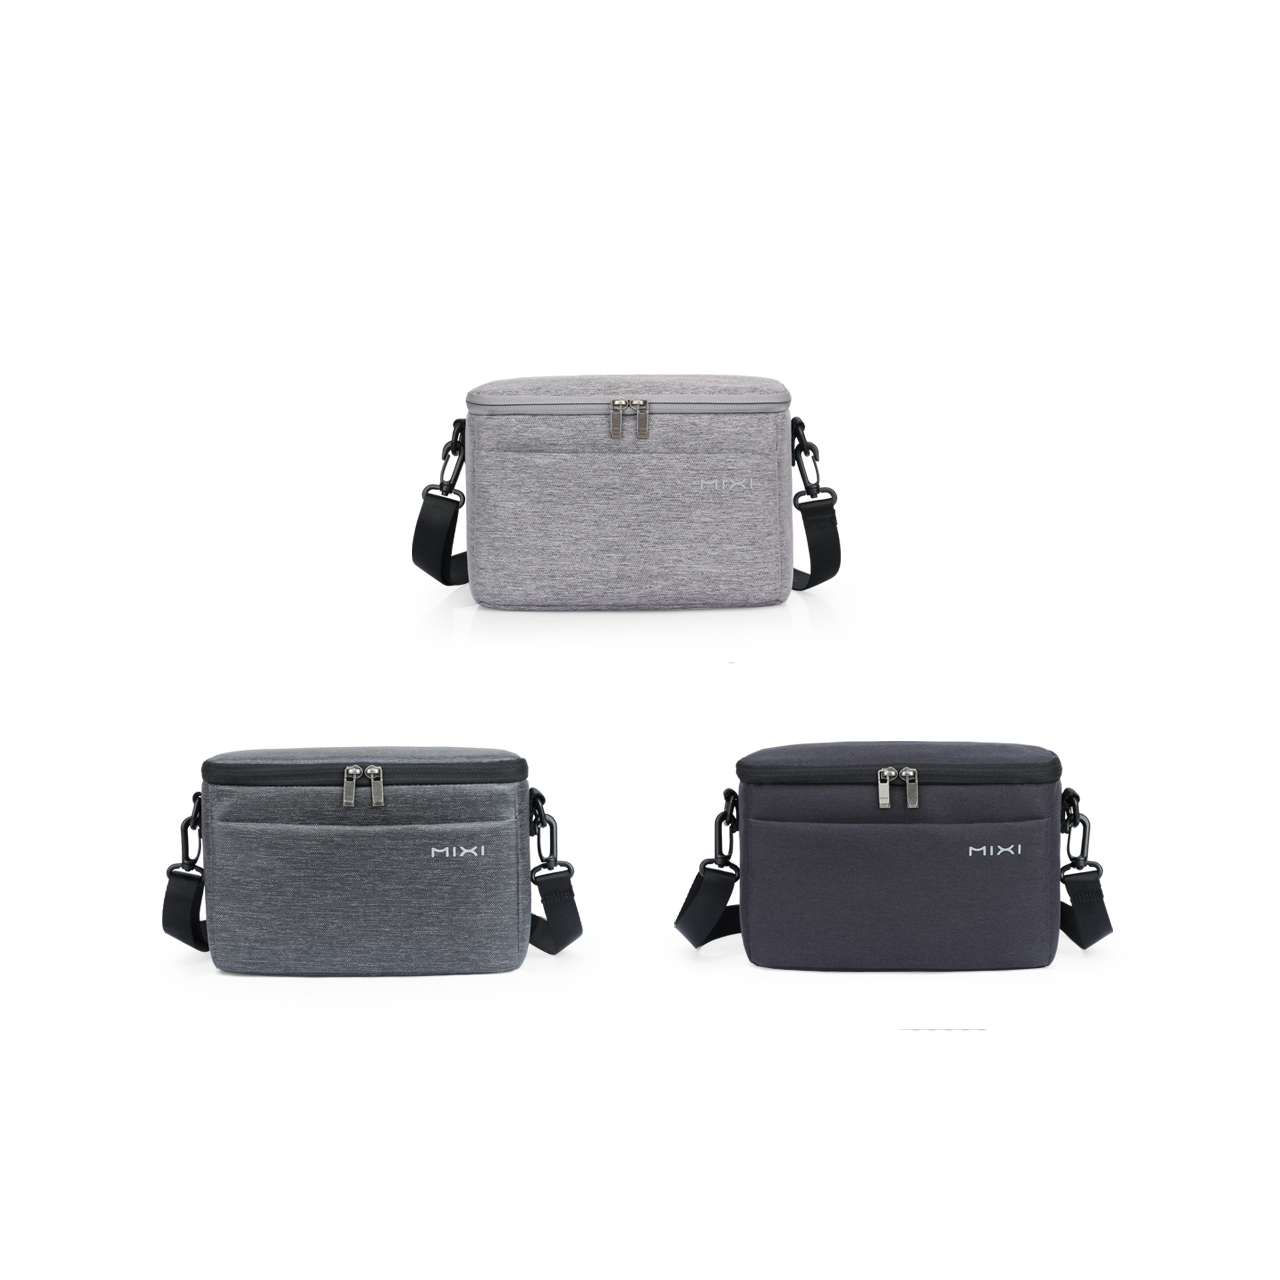 Camera Bag Case for Nikon, Canon, Sony, Fuji Instax, DSLR, Mirrorless Cameras And Lenses